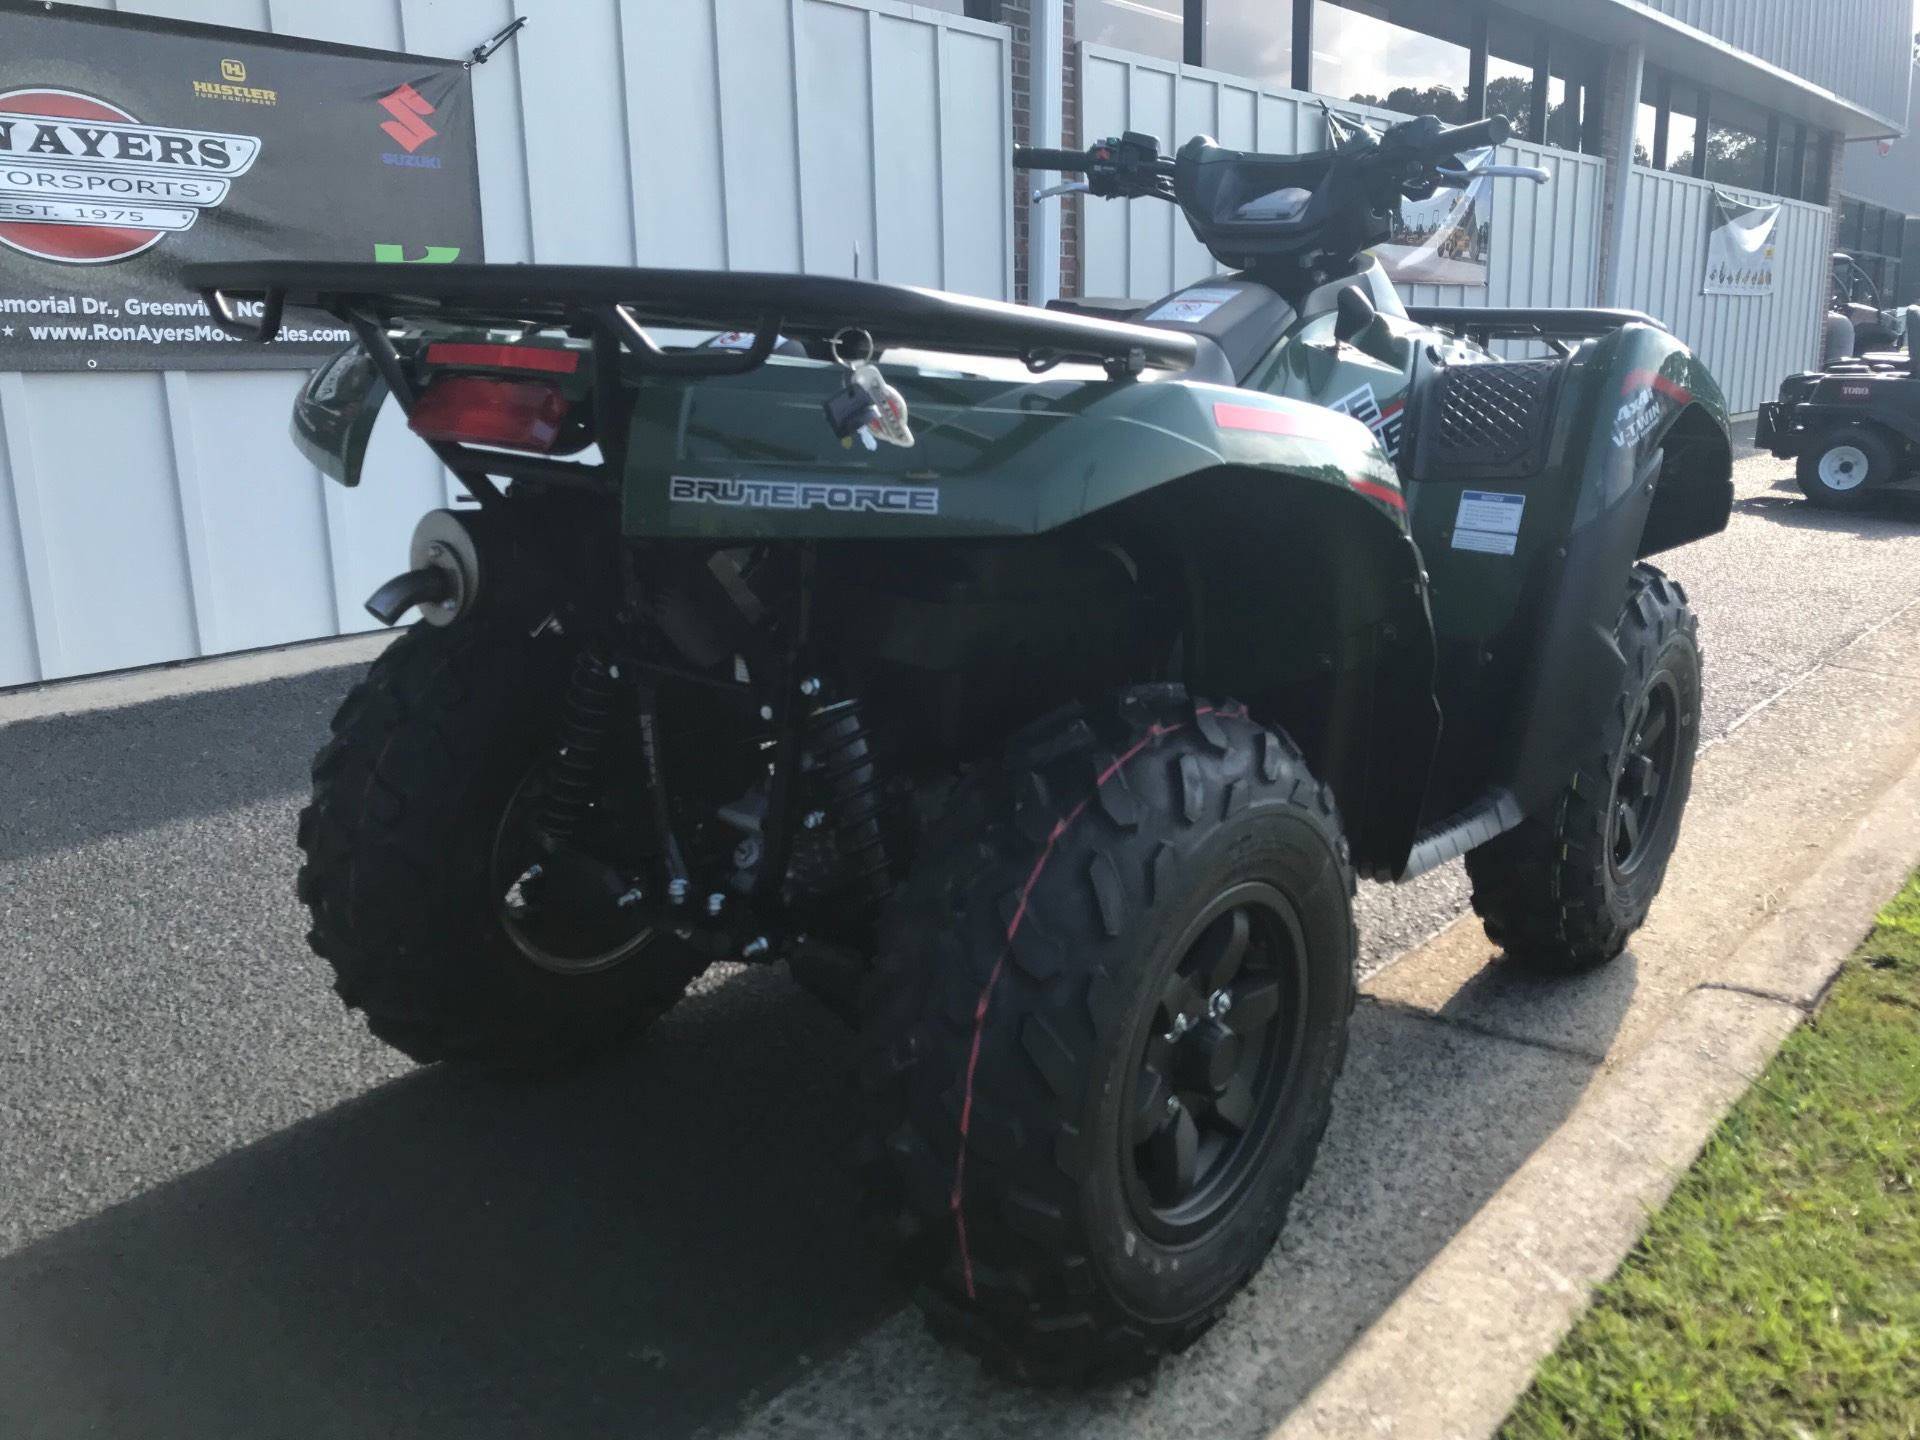 2019 Kawasaki Brute Force 750 4x4i in Greenville, North Carolina - Photo 10